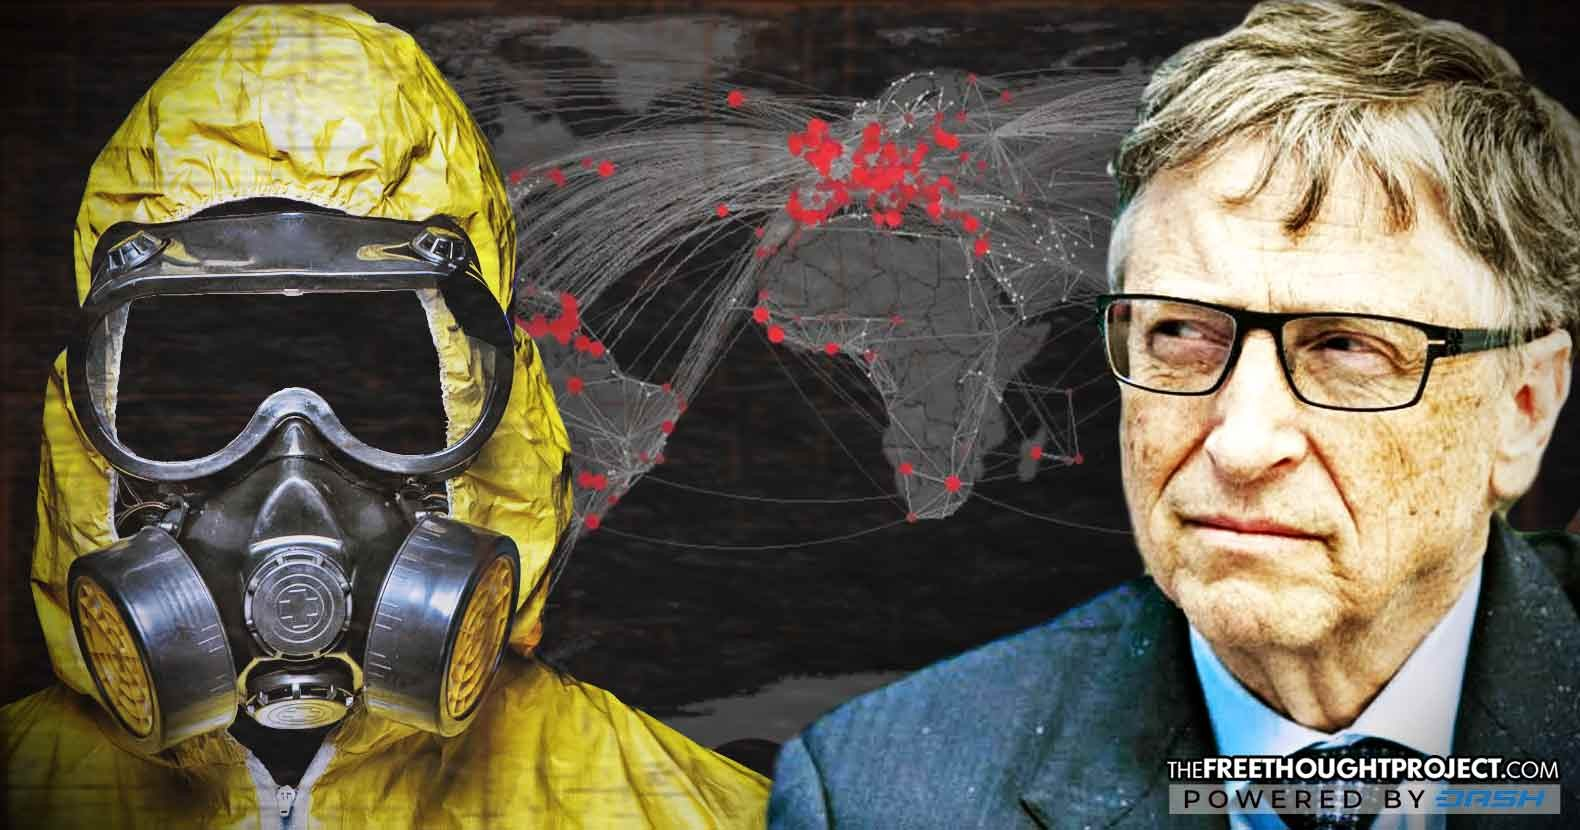 Bill Gates Warns of Doomsday 'Global Pandemic' That Could Kill 30 Million in Under a Year